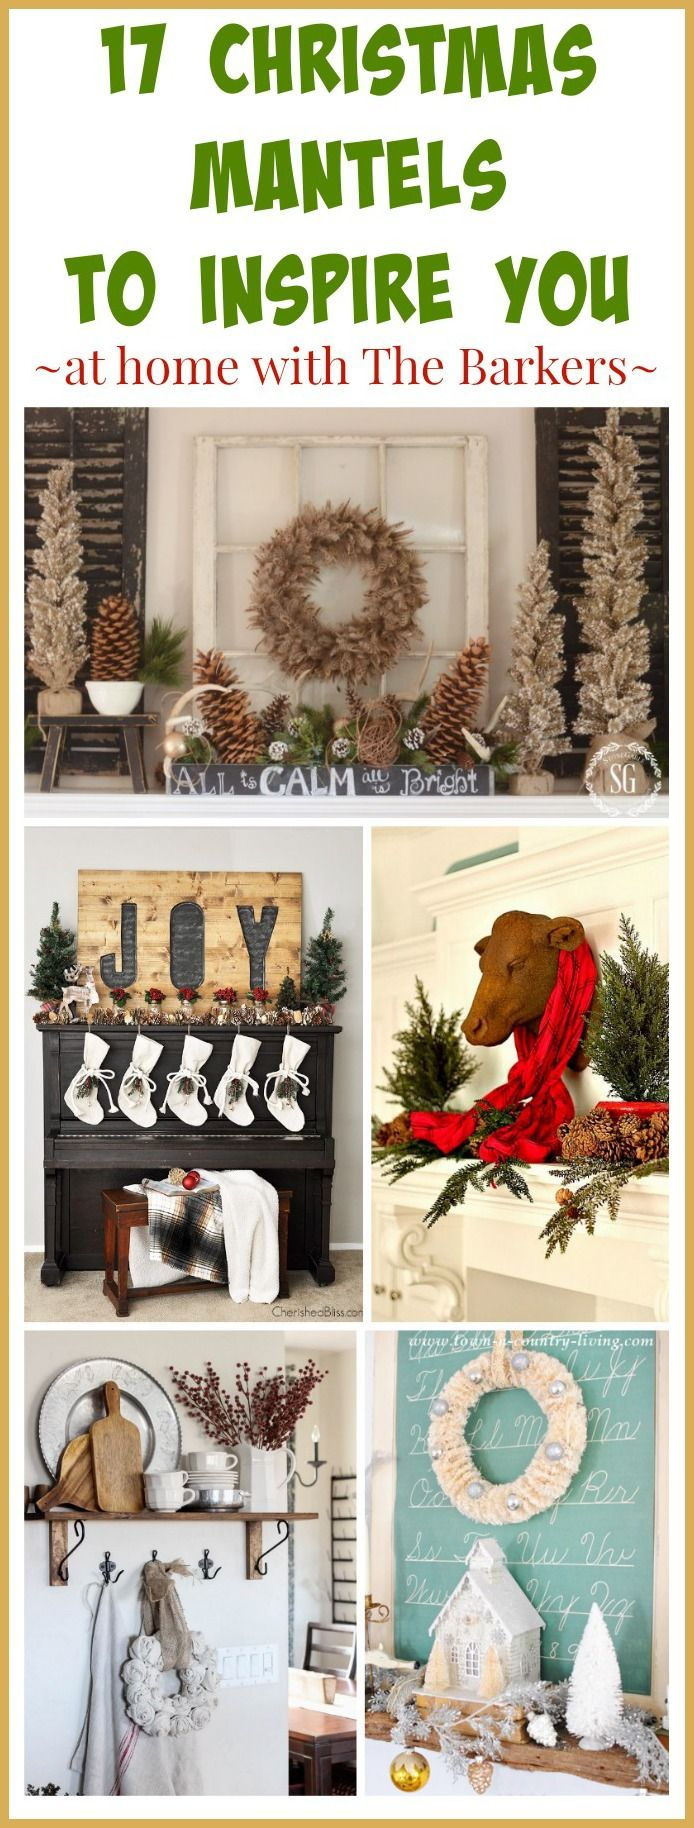 High Quality 17 Christmas Mantels To Inspire You